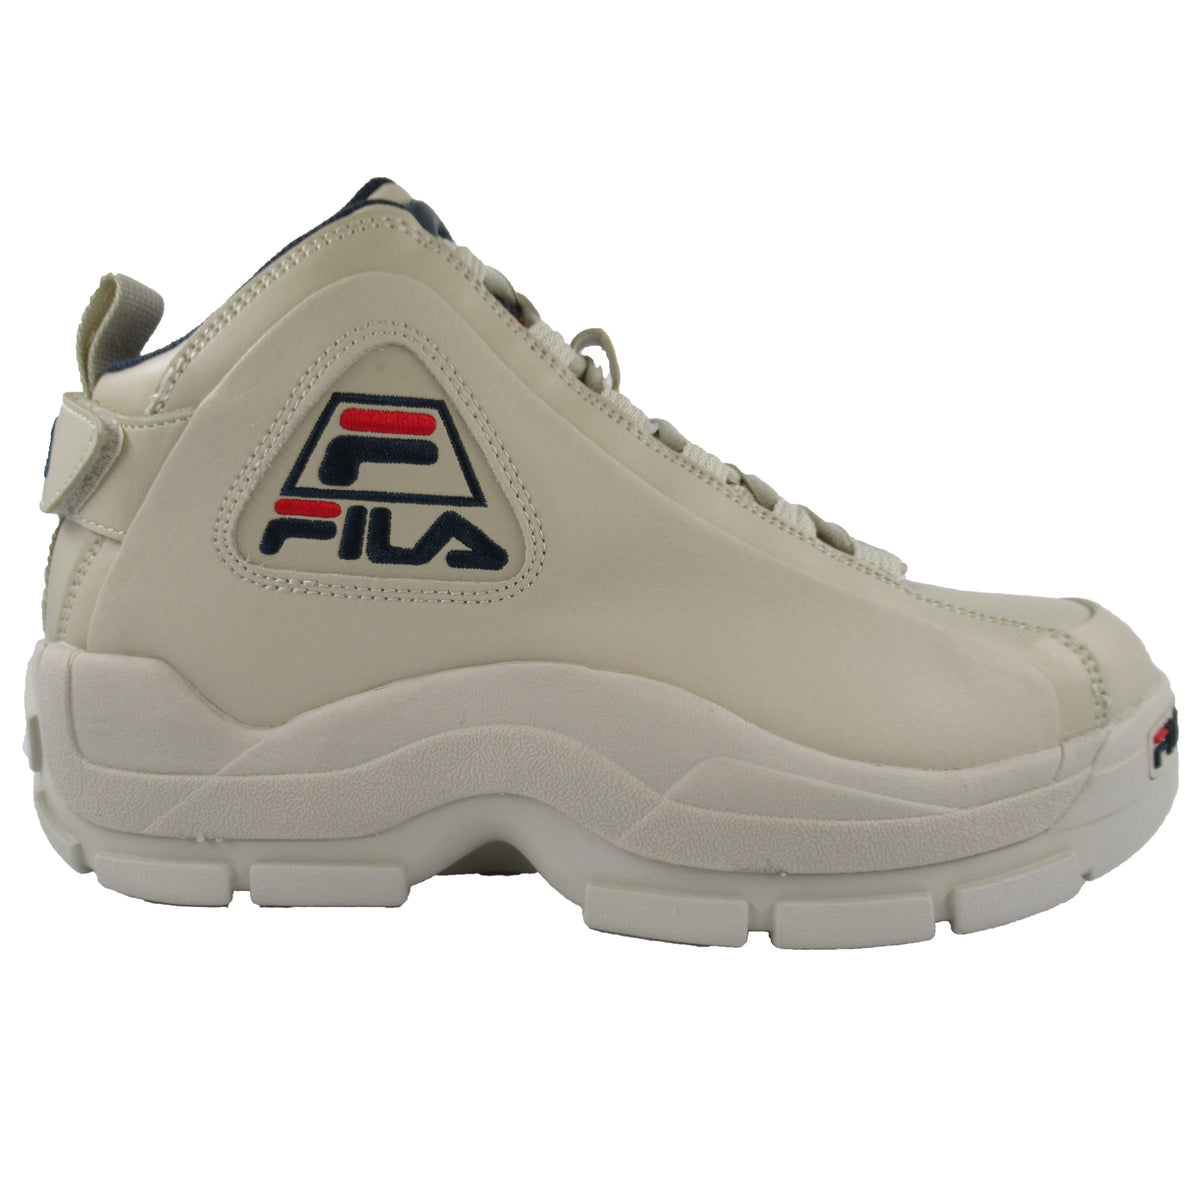 Fila Men's Grant Hill 2 Cement Basketball Shoes